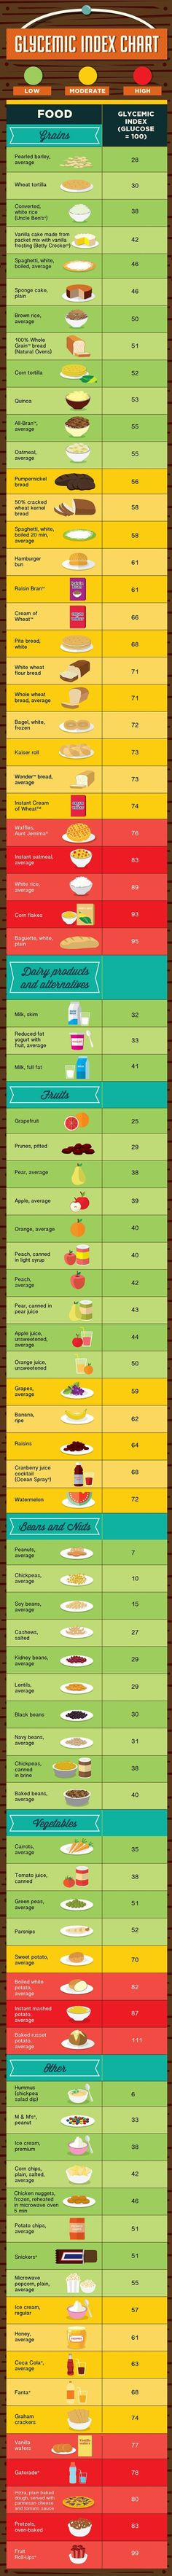 Diabetics Glycemic Foods Index Chart. Learn about Tego Tea; the diabetic miracle that significantly reduces blood sugar levels and symptoms associated with Type 2 Diabetes. Tego Tea may provide alternatives, solutions, and remedies to many of today's heal